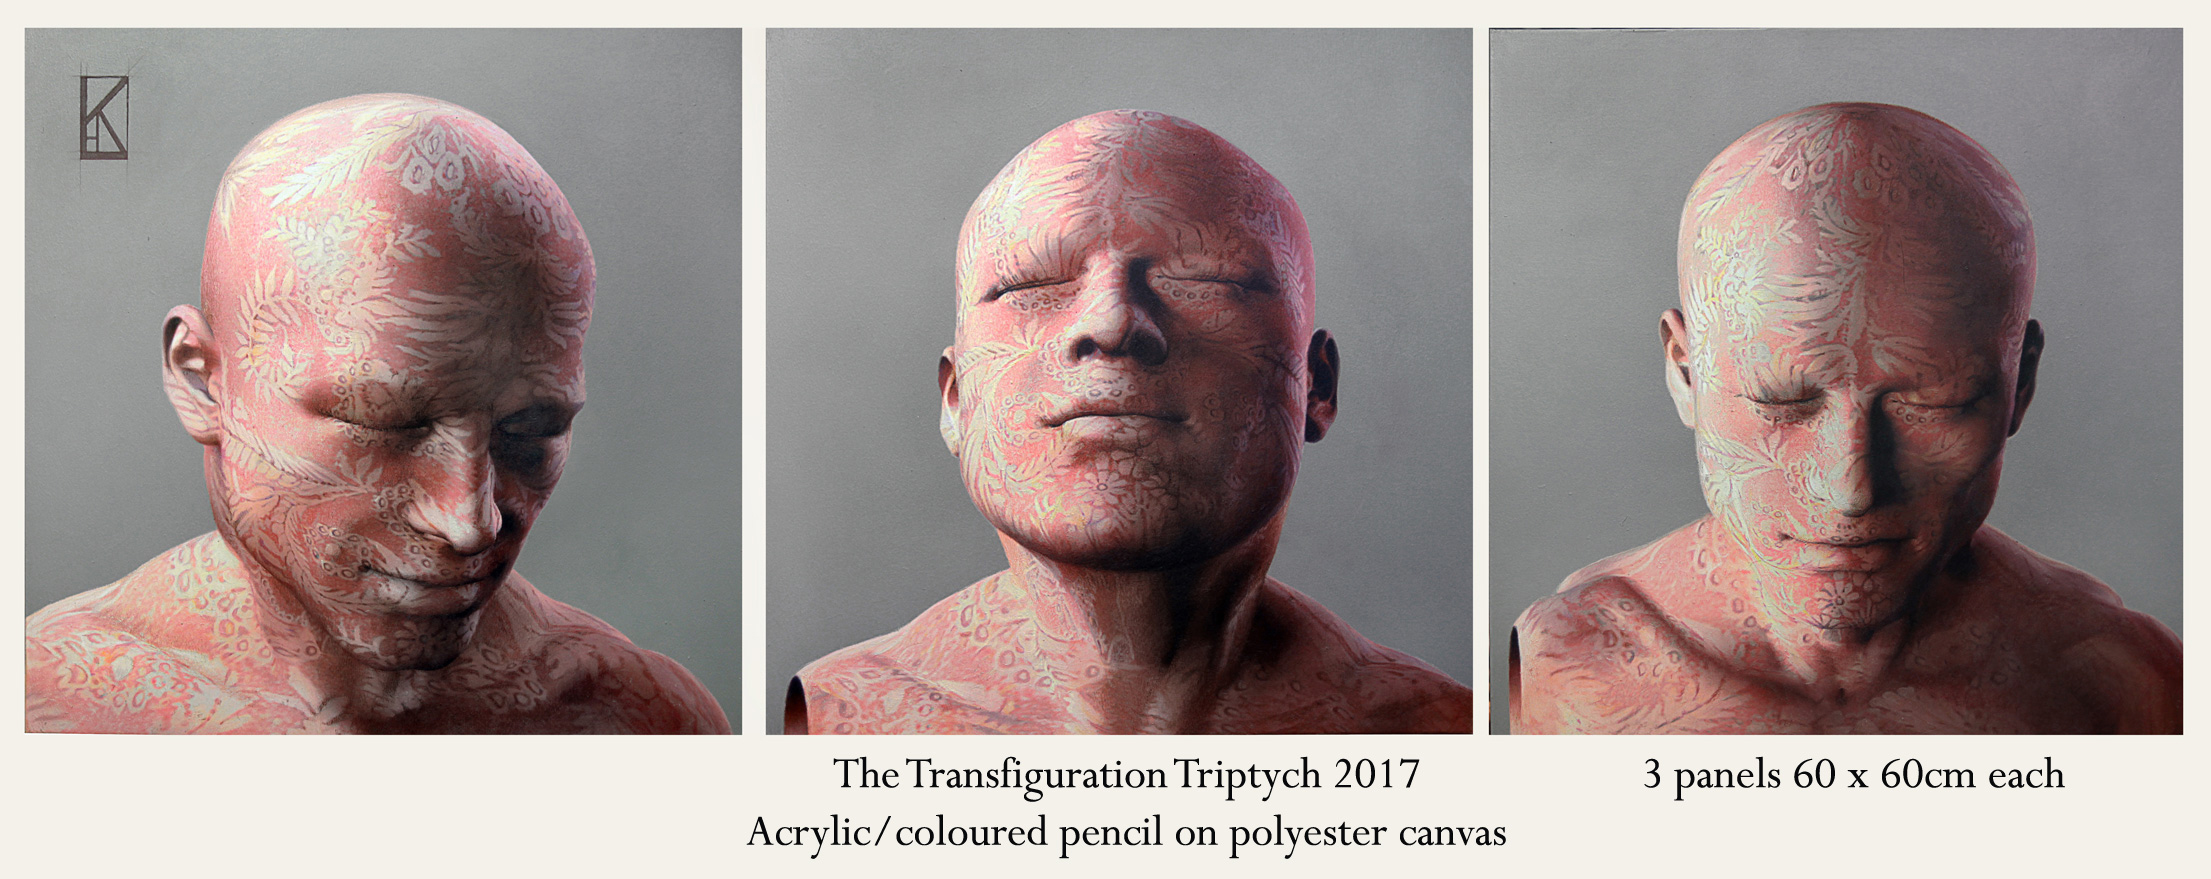 The Transfiguration Triptych